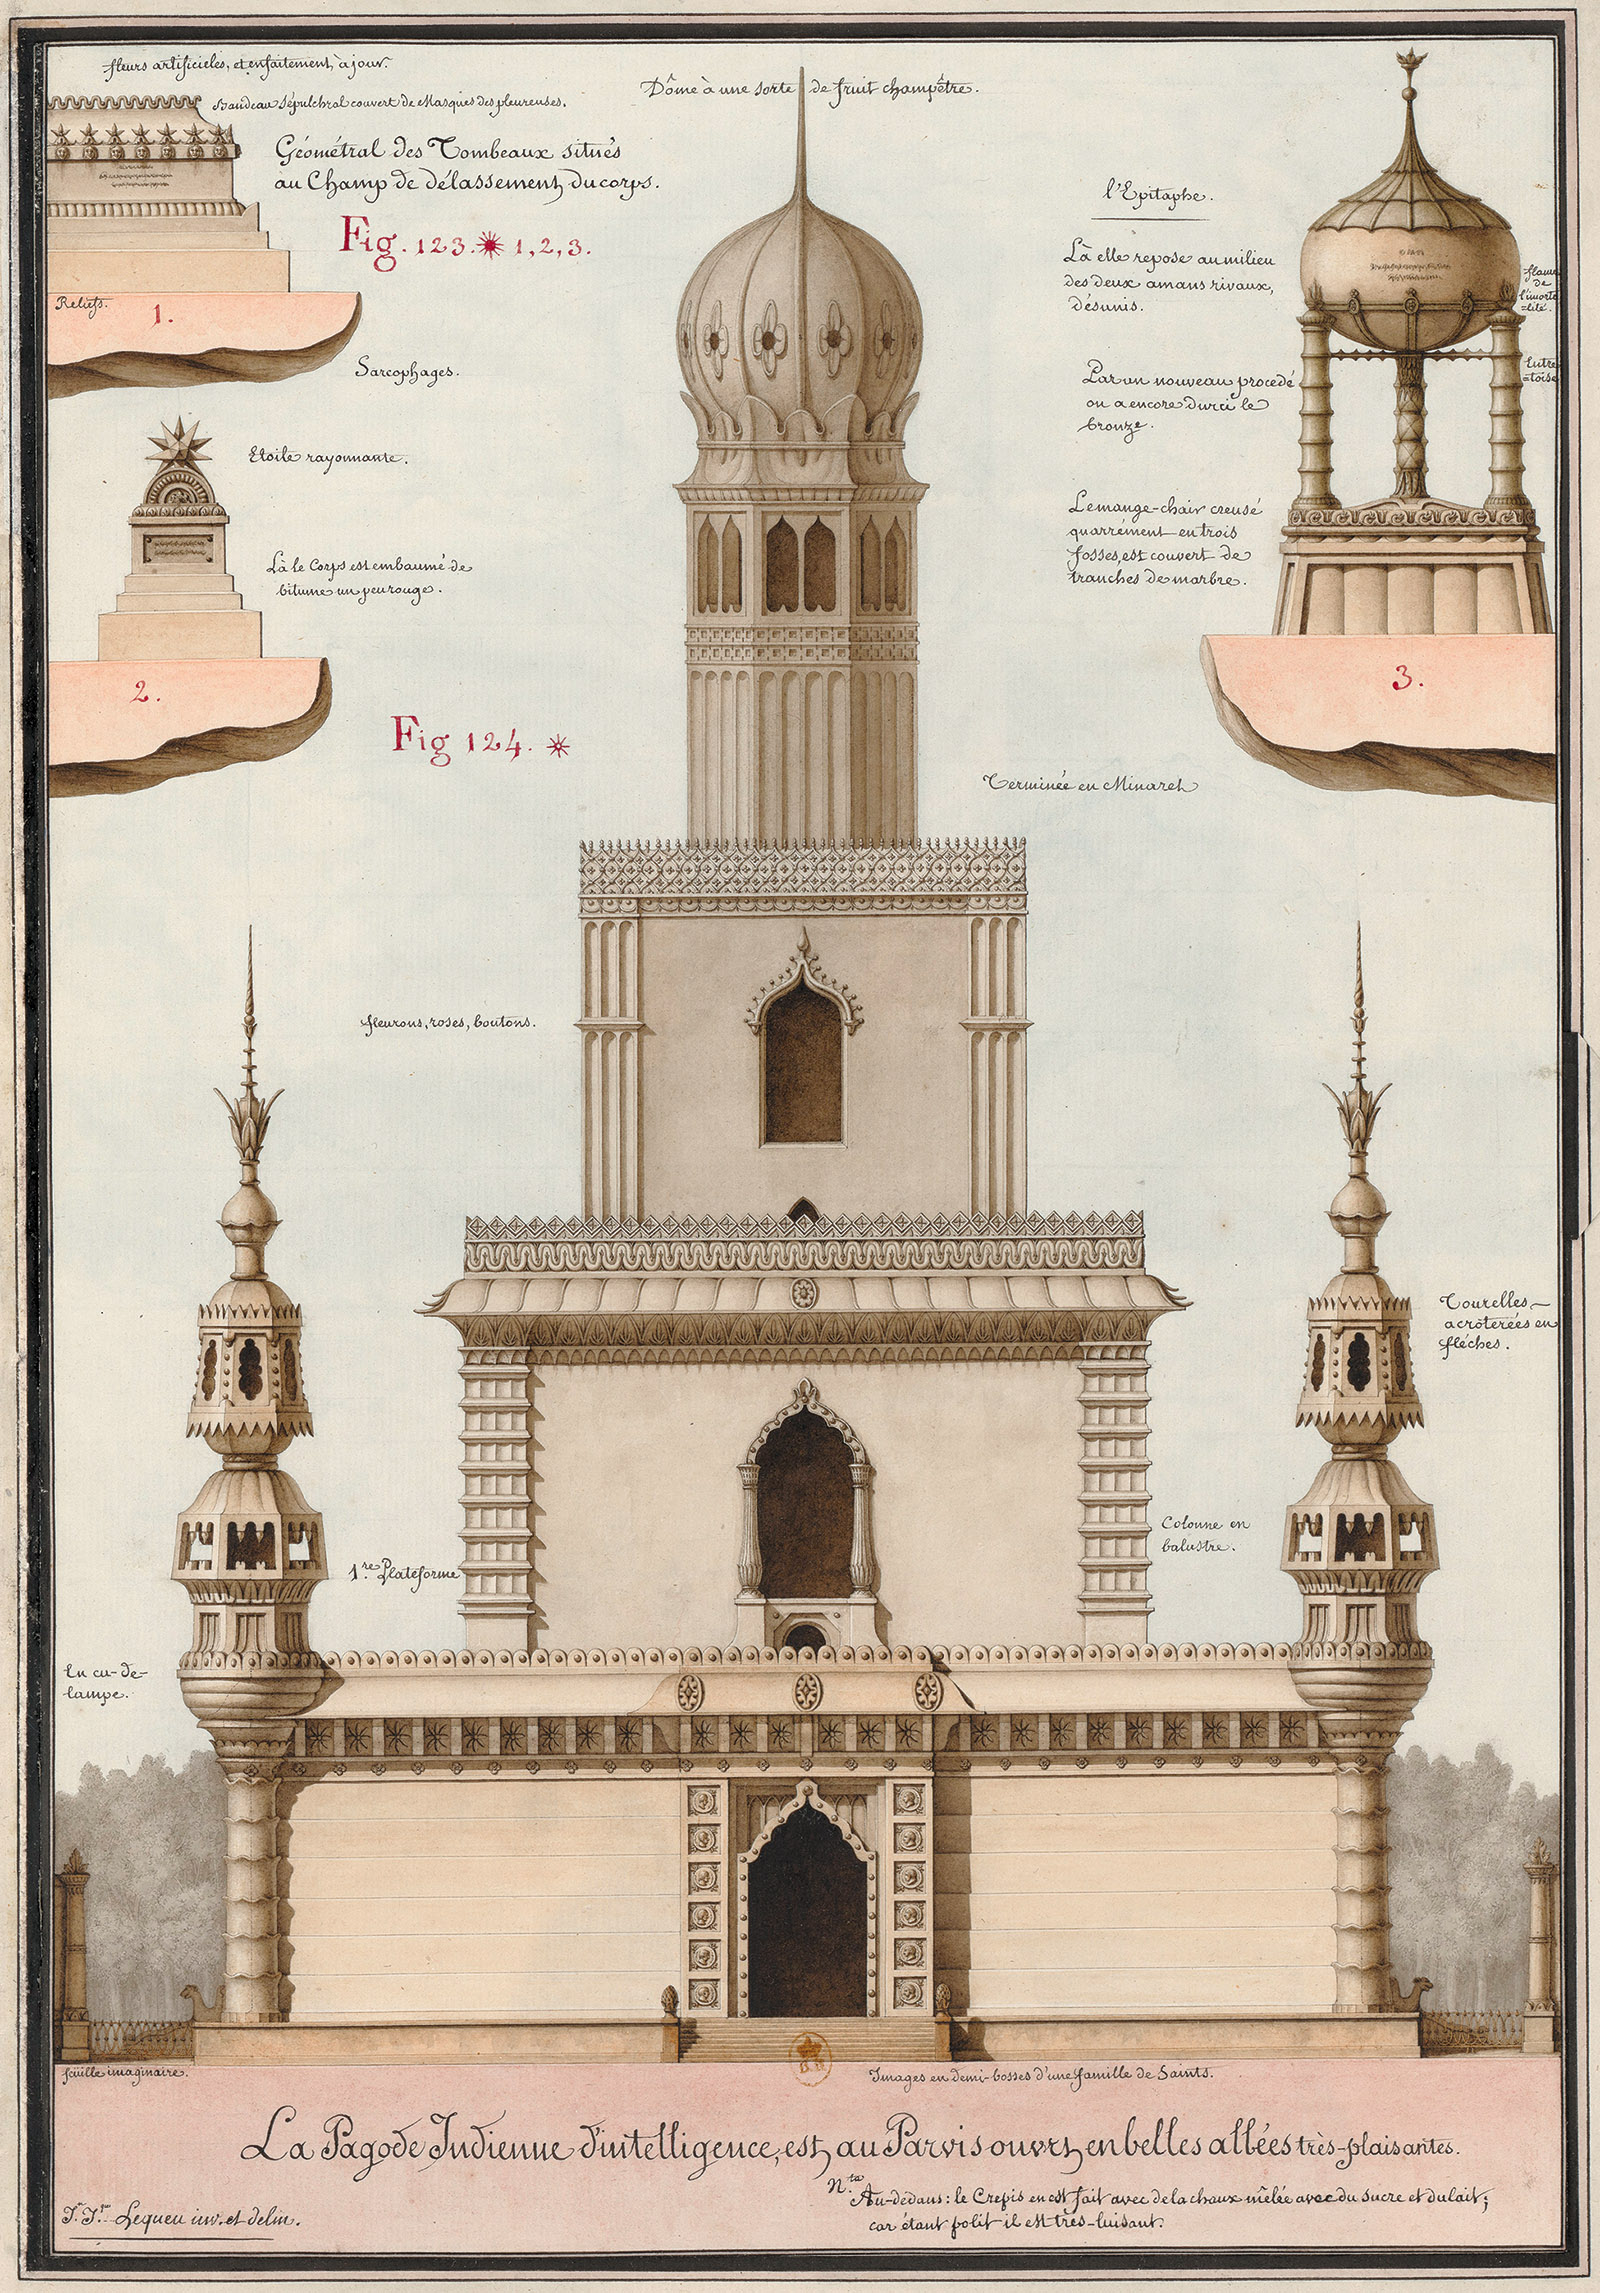 Indian Pagoda of Intelligence; drawing by Jean-Jacques Lequeu